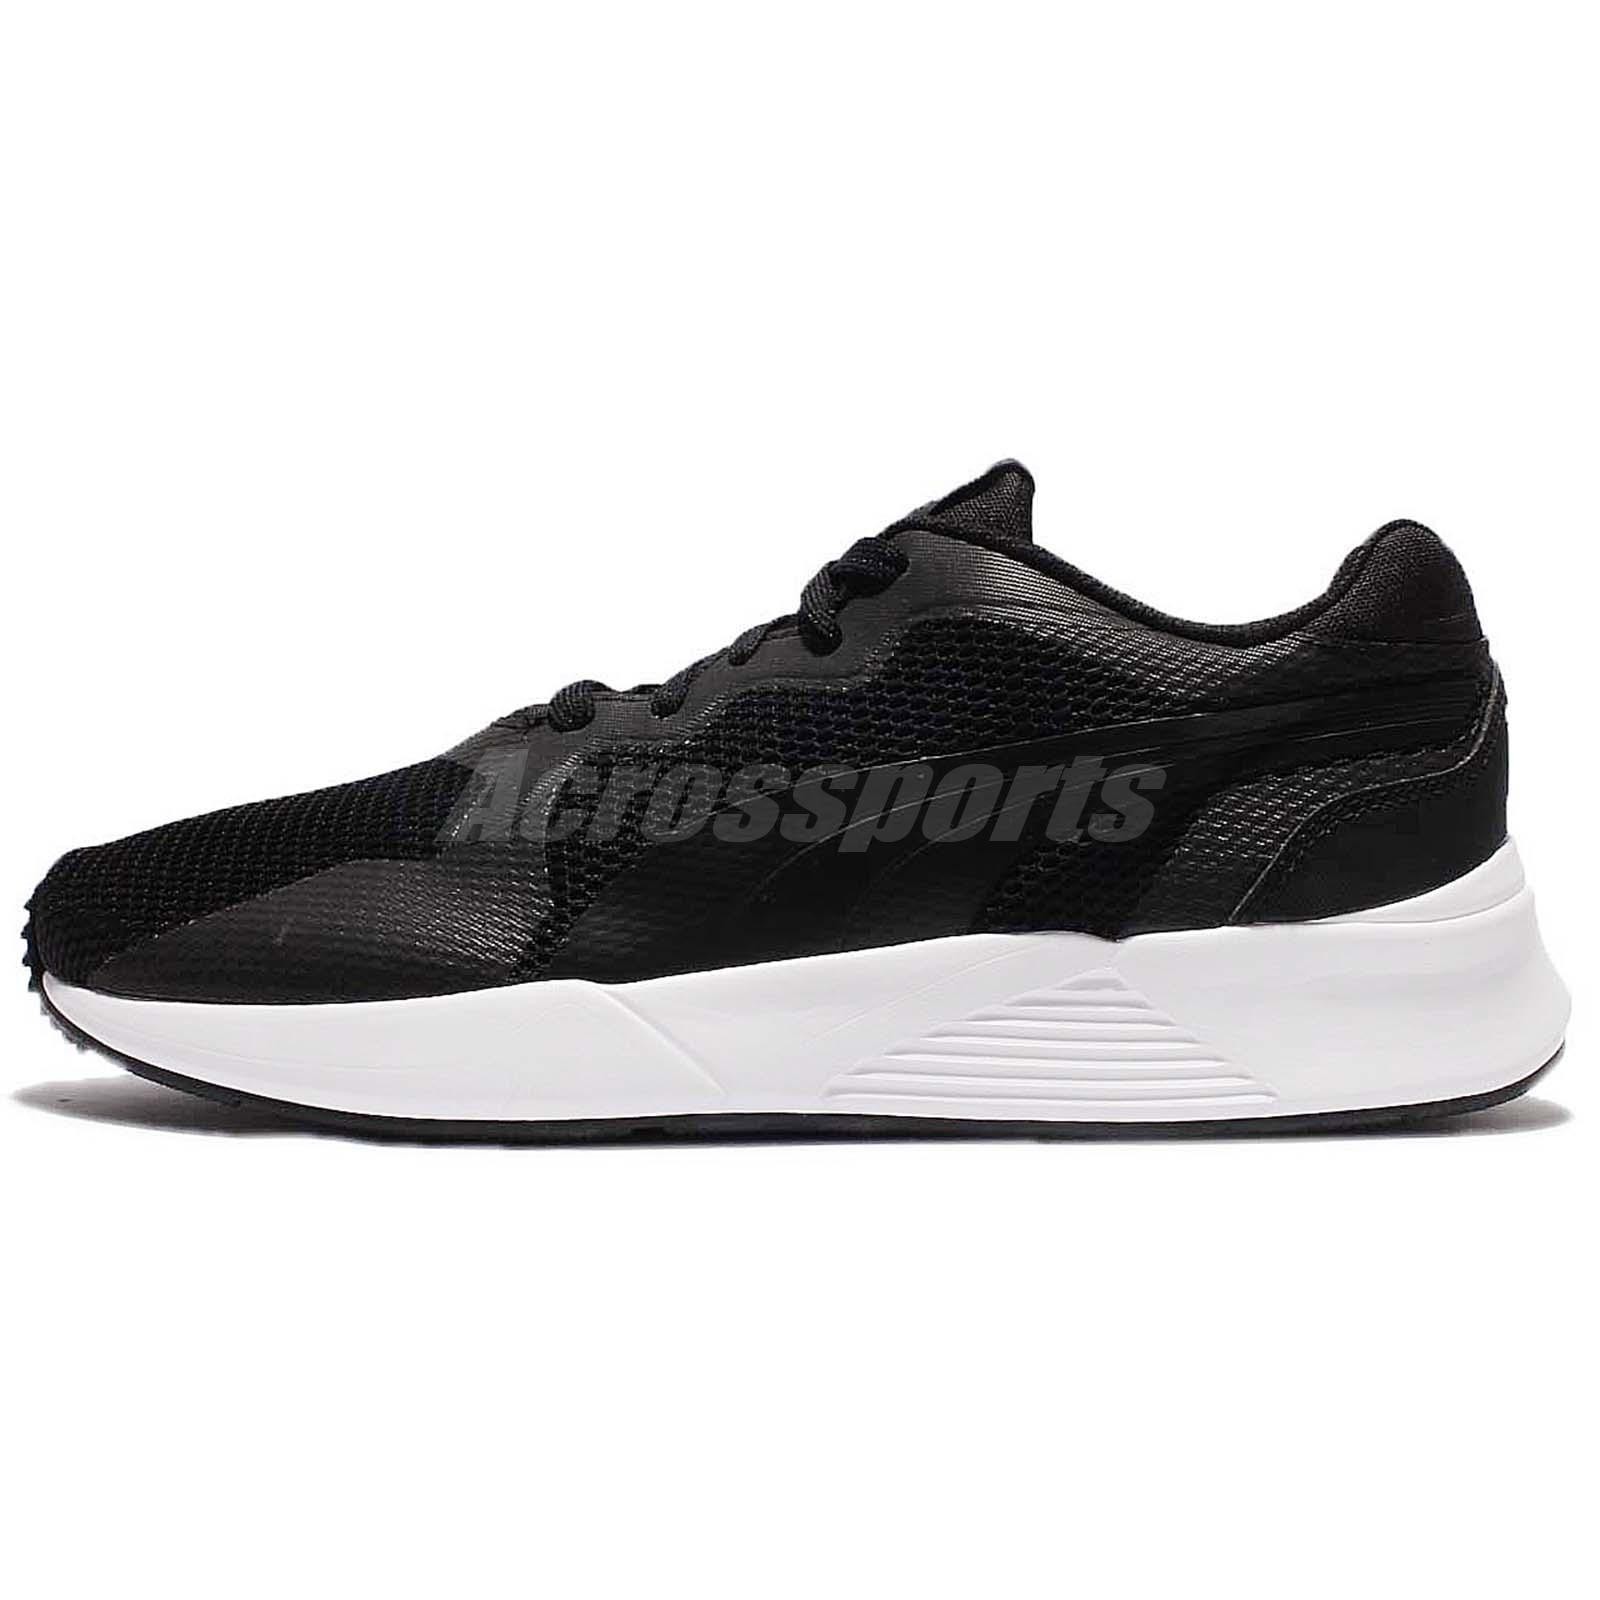 Puma Pacer Plus Tech Black White Men Running Shoes Sneakers Trainers  363338-01